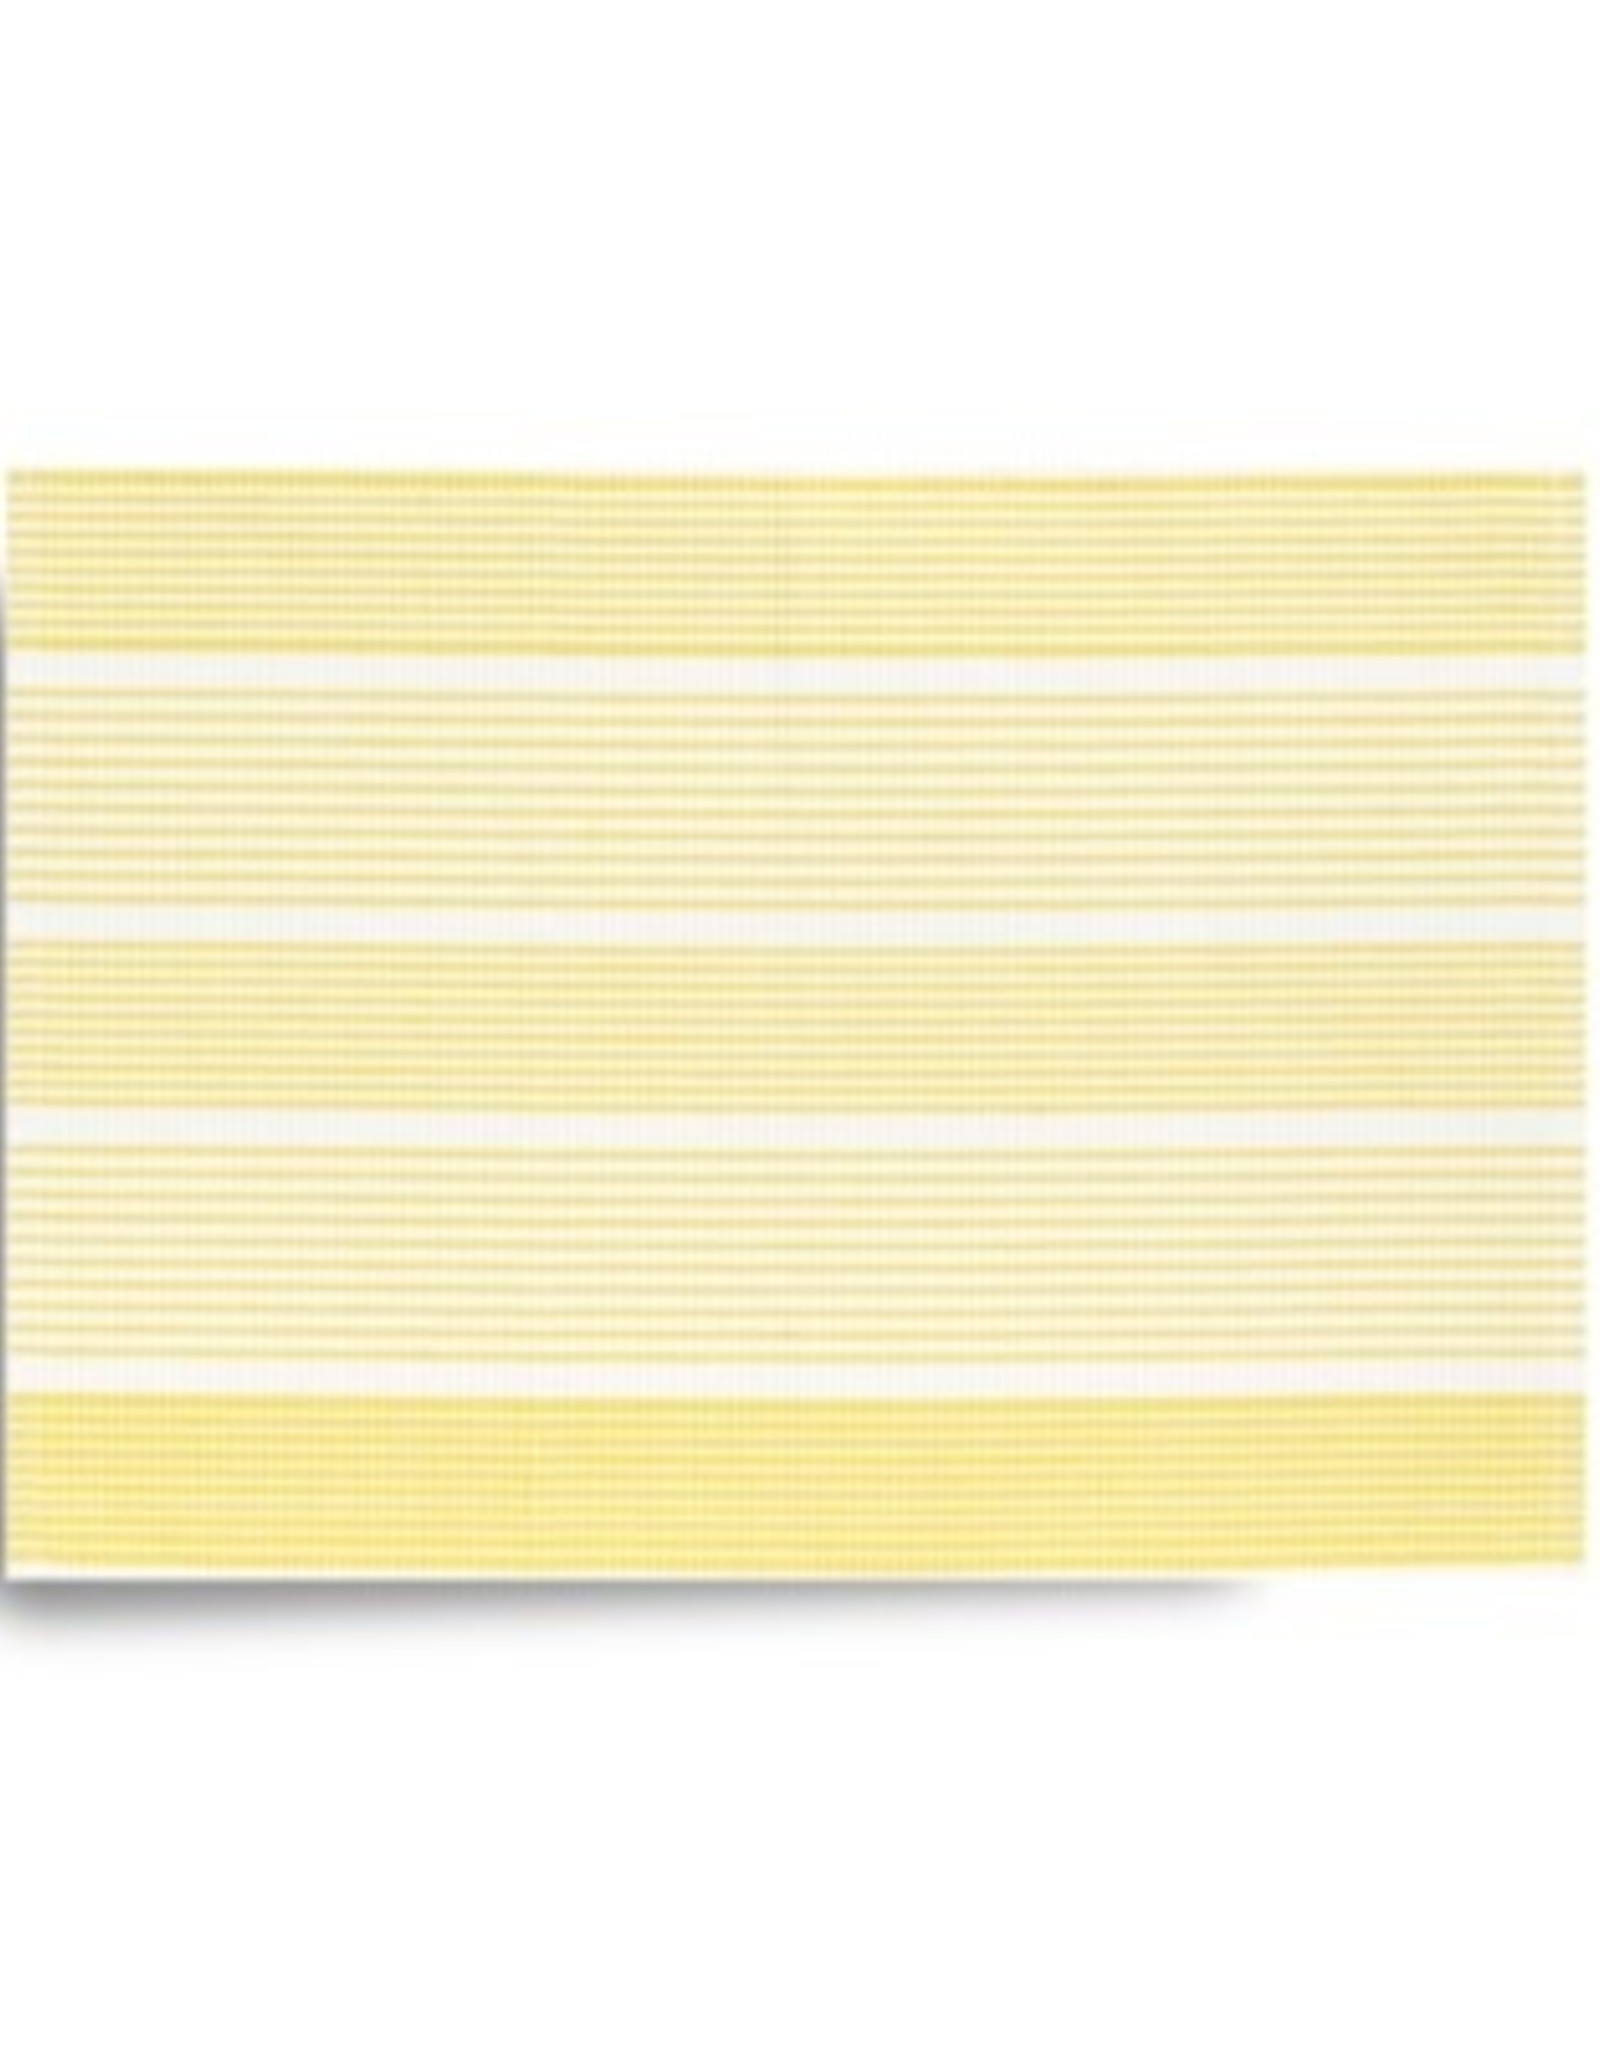 Placemat Harman Ribbed Stripe 13x19 Yellow